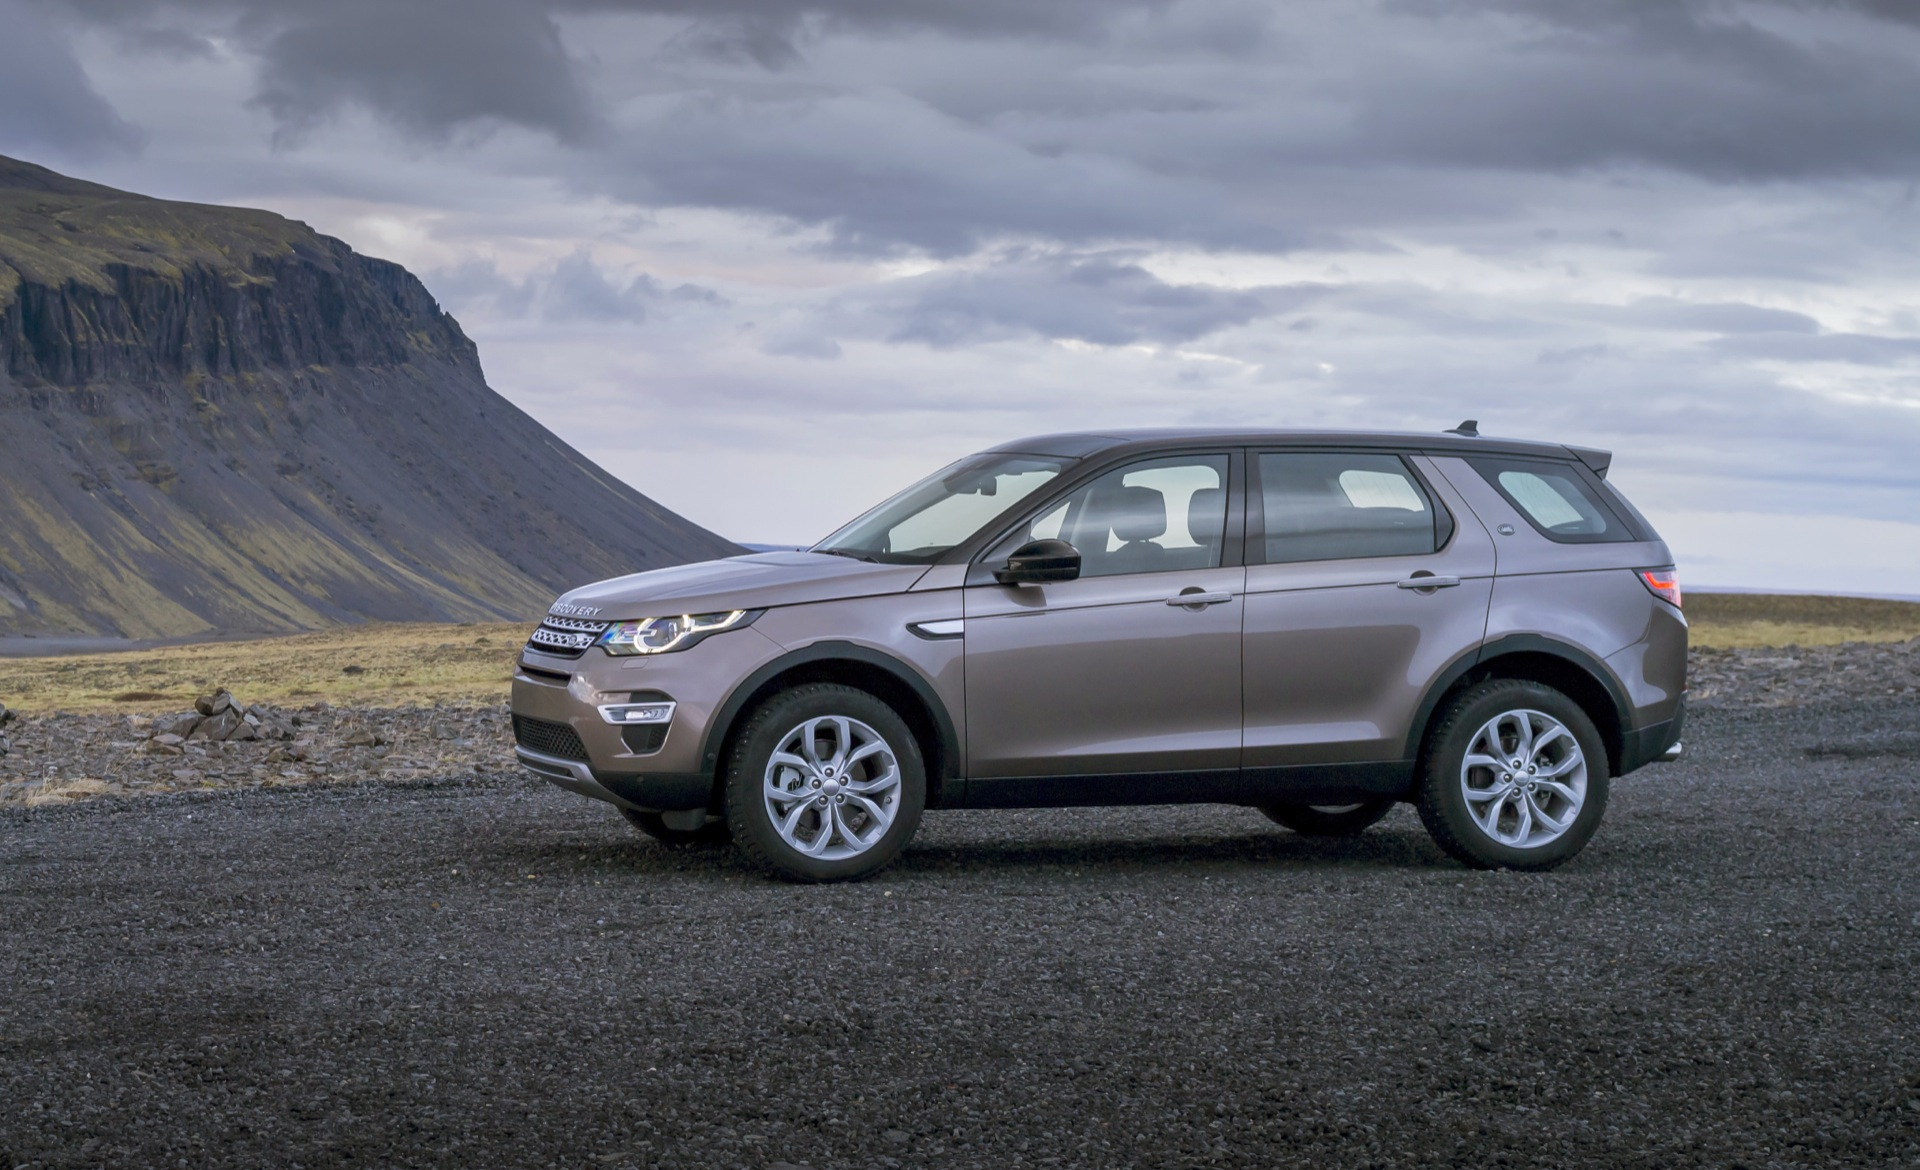 Super Cars Wallpapers Hd Download Super Land Rover Discovery Sport Wallpaper Full Hd Pictures